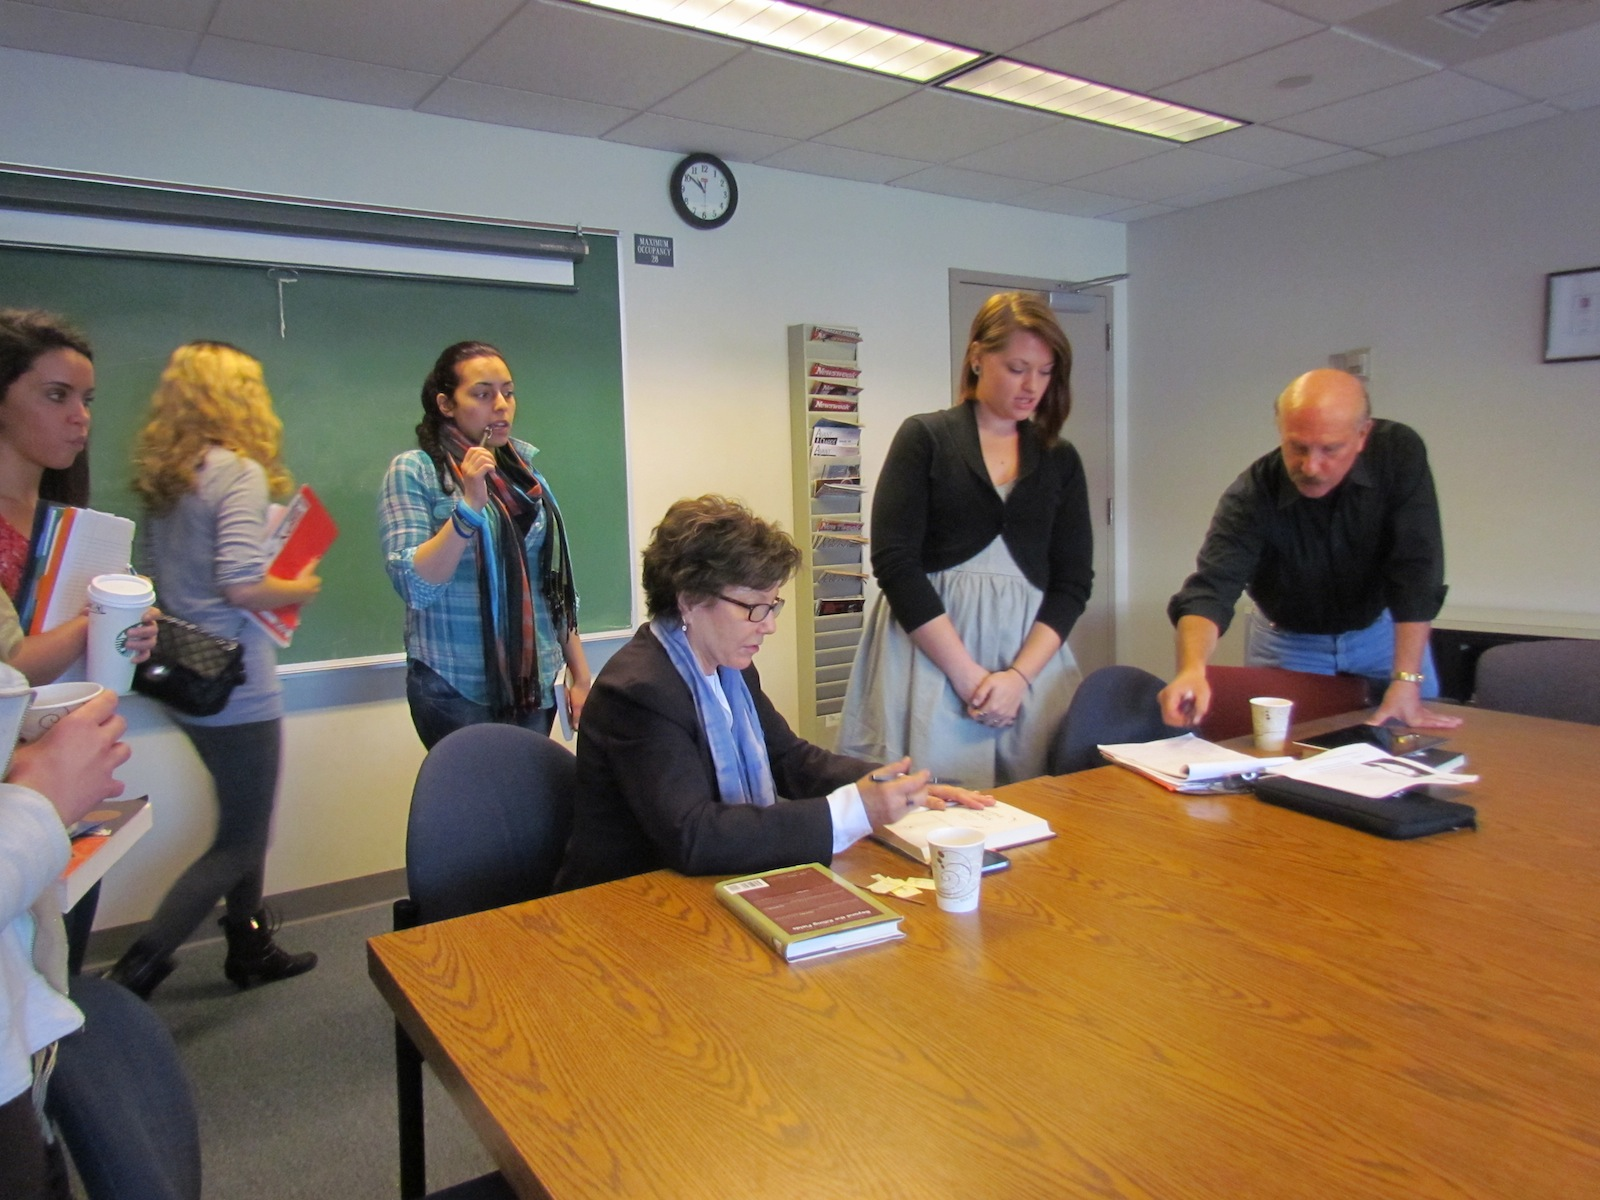 In Robert Miraldi's Journalism 1 class Amos signs copies of her book Eclipse of the Sunnis. Photo by Smaranda Dumitru.